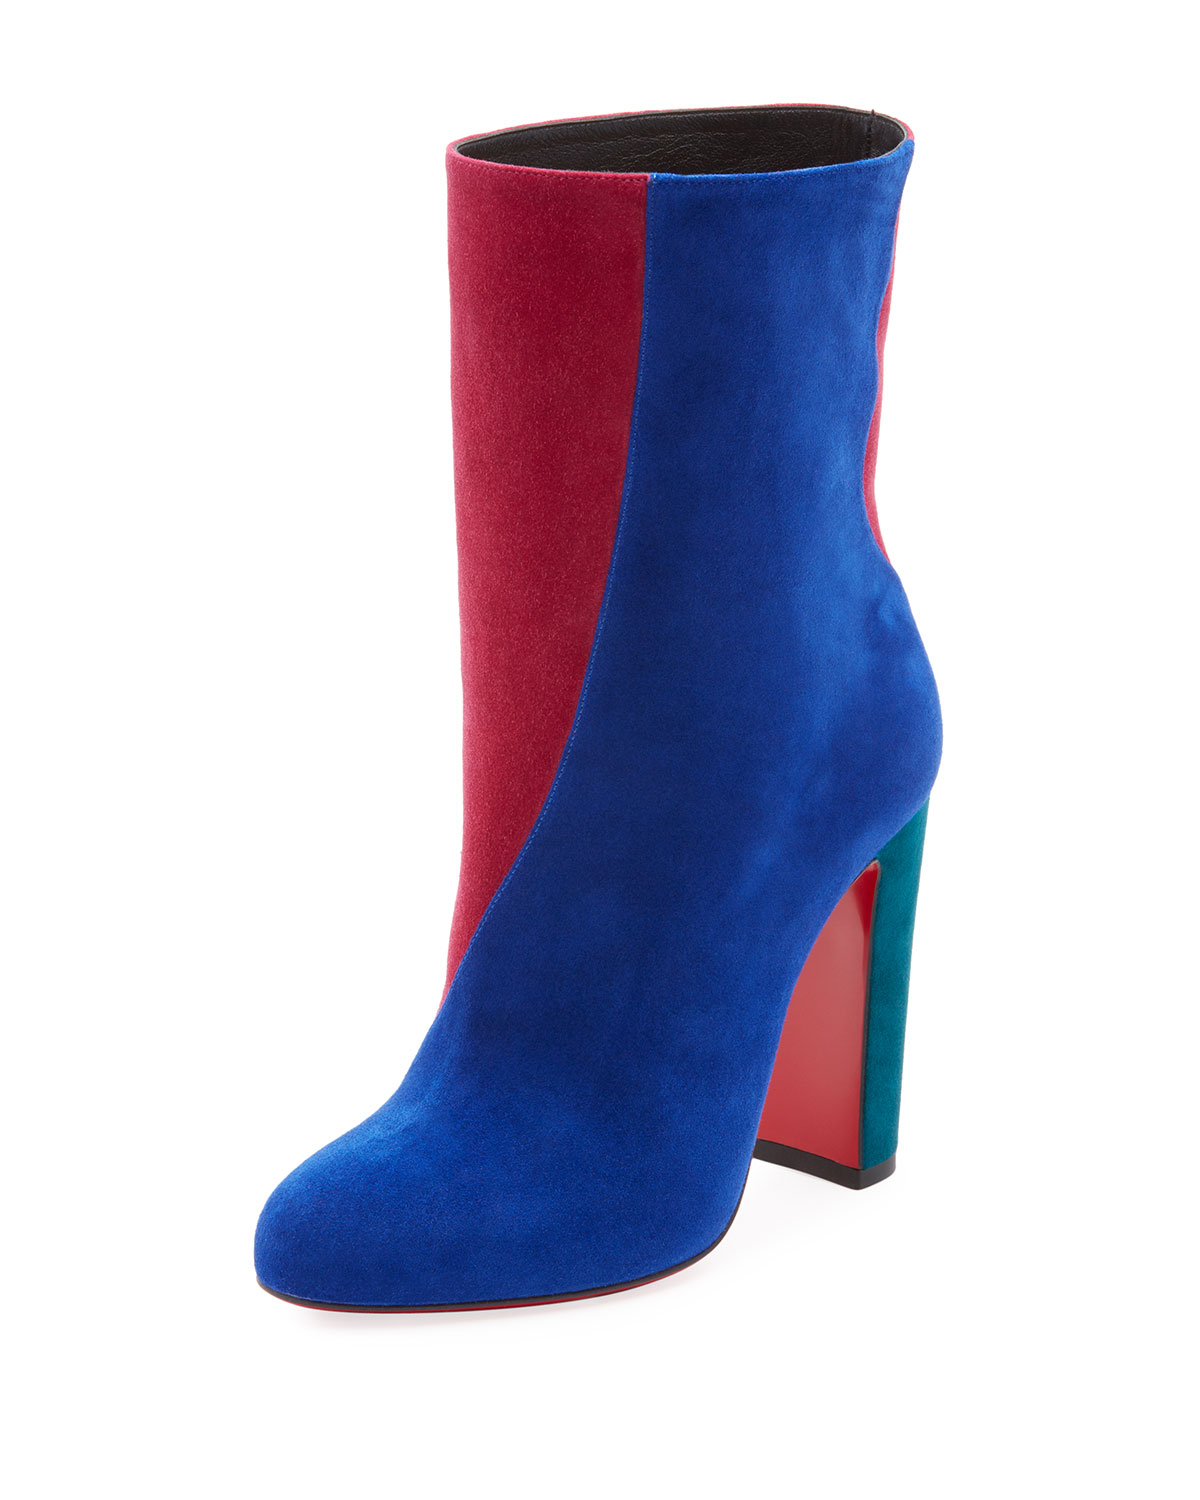 CHRISTIAN LOUBOUTIN BOTTY DOUBLE COLORBLOCK SUEDE RED SOLE BOOTIE